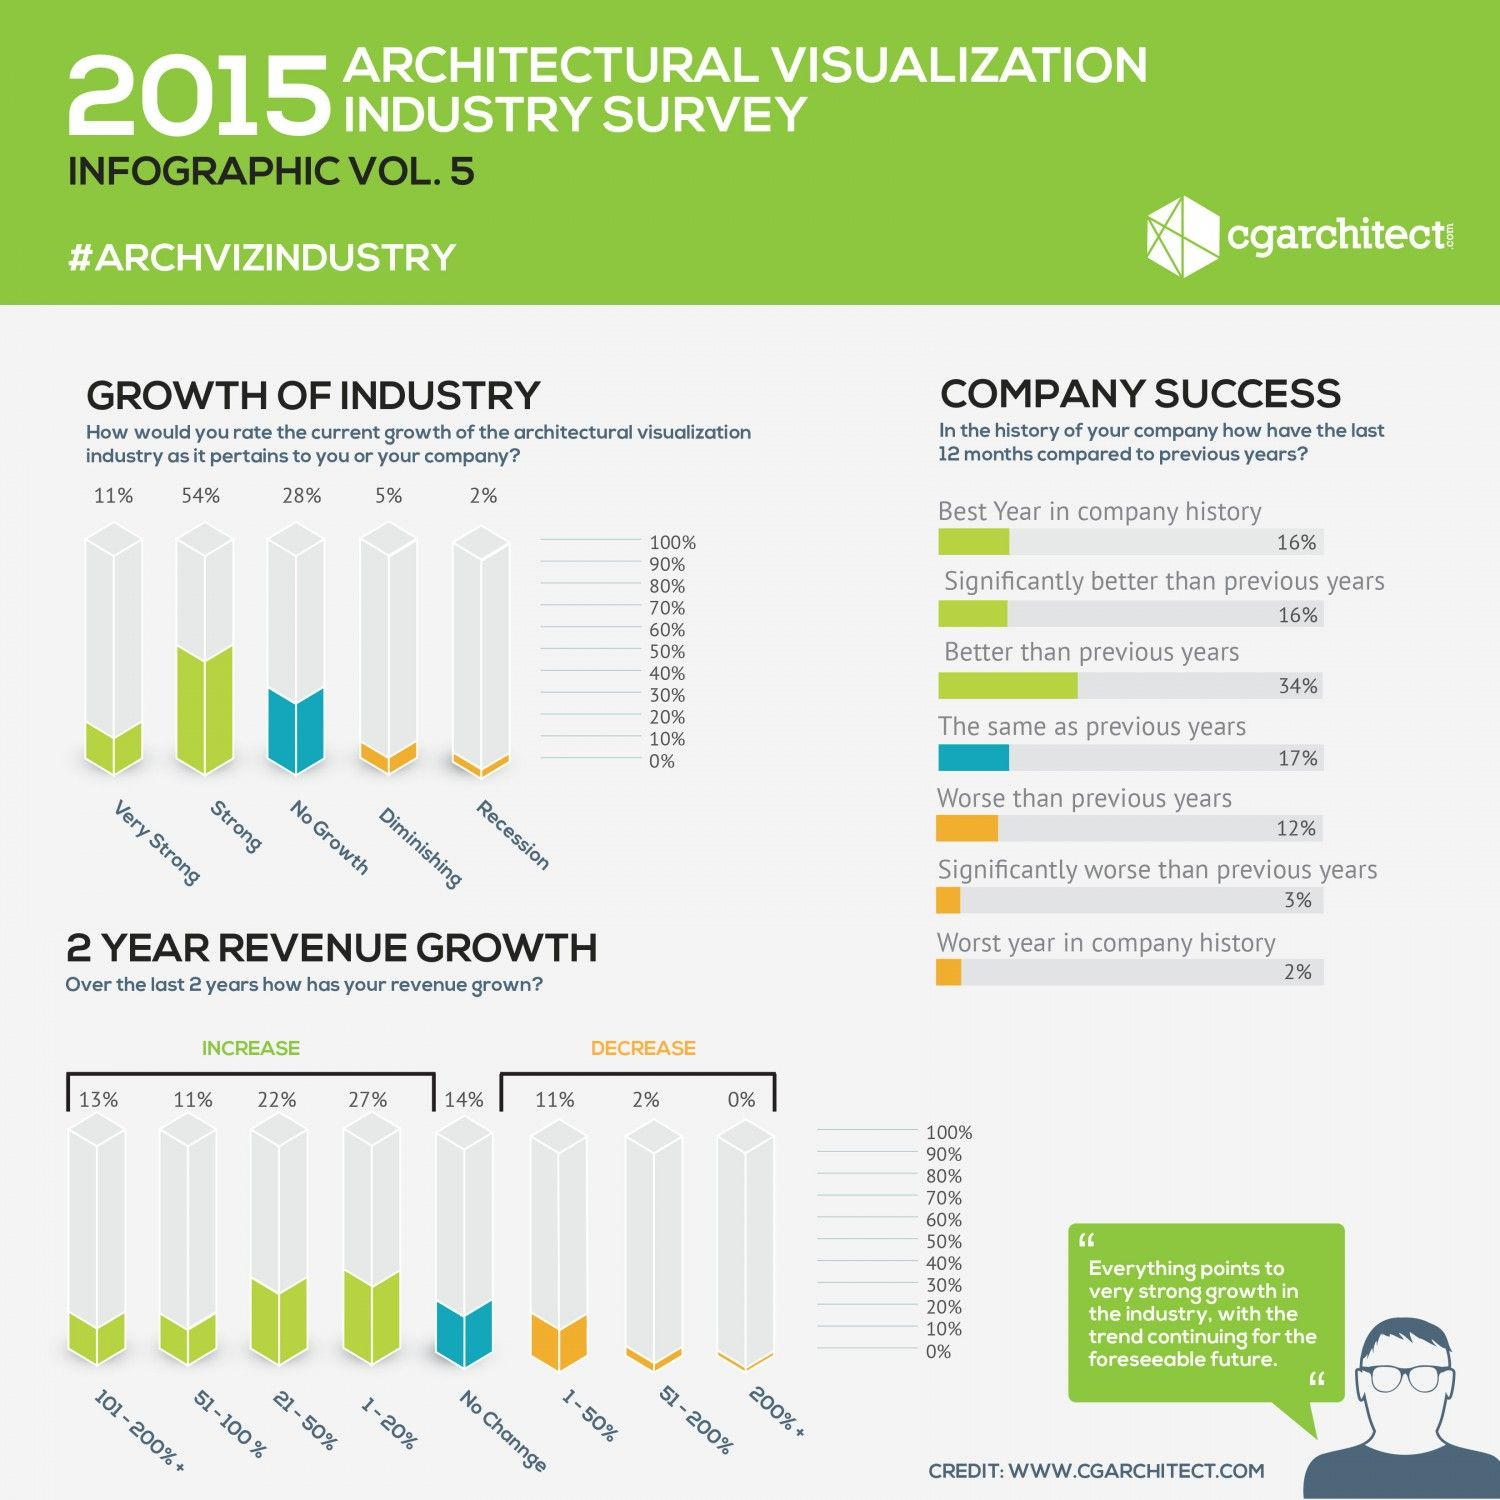 2015 Architectural Visualizationindustry Survey Infographic Volume 5 Jeff Mottle Infographic Shopping Mall Marketing Images